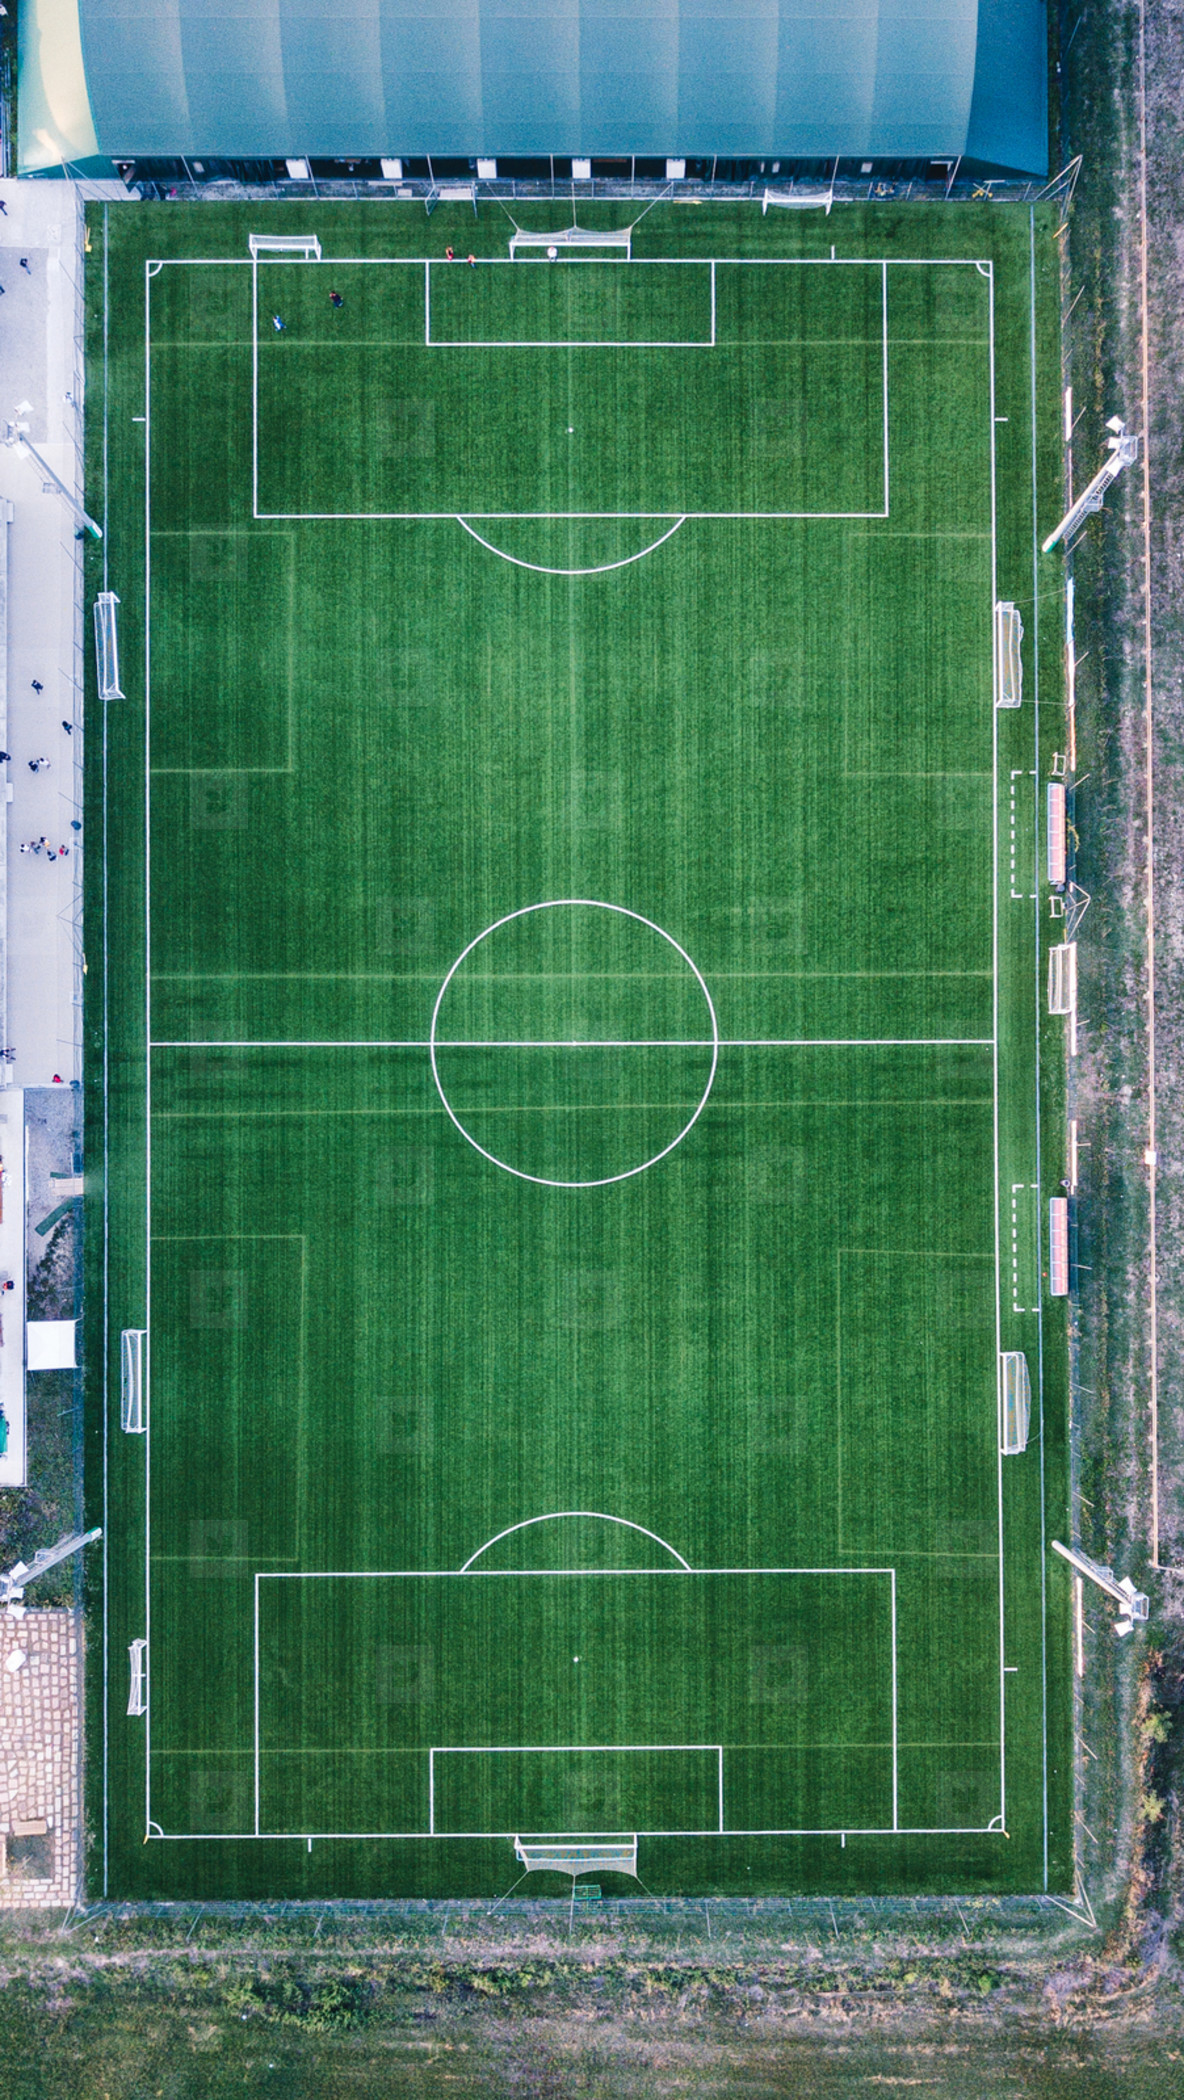 Aerial view of real soccer